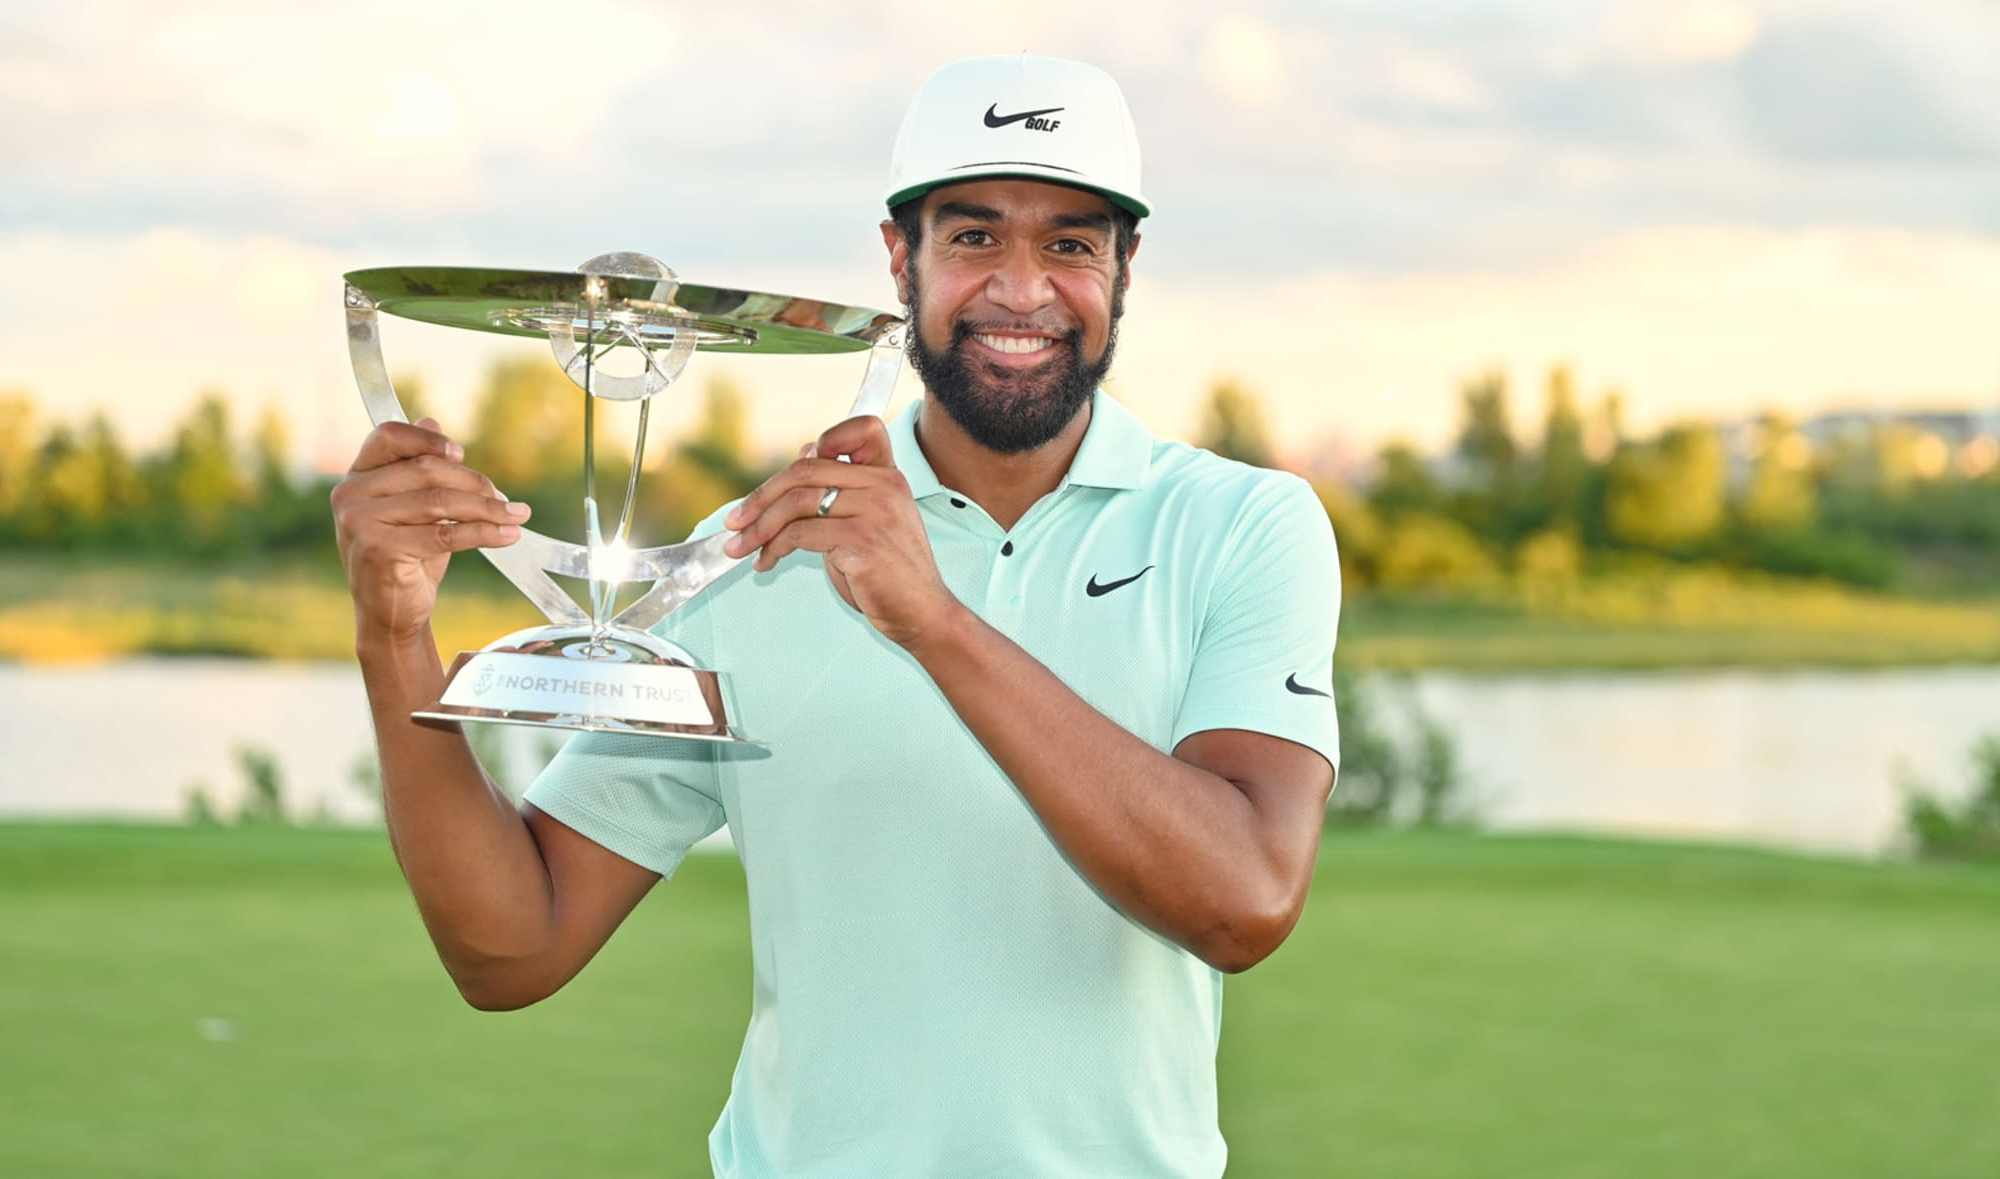 Tony Finau wins for the first time in 5 years!